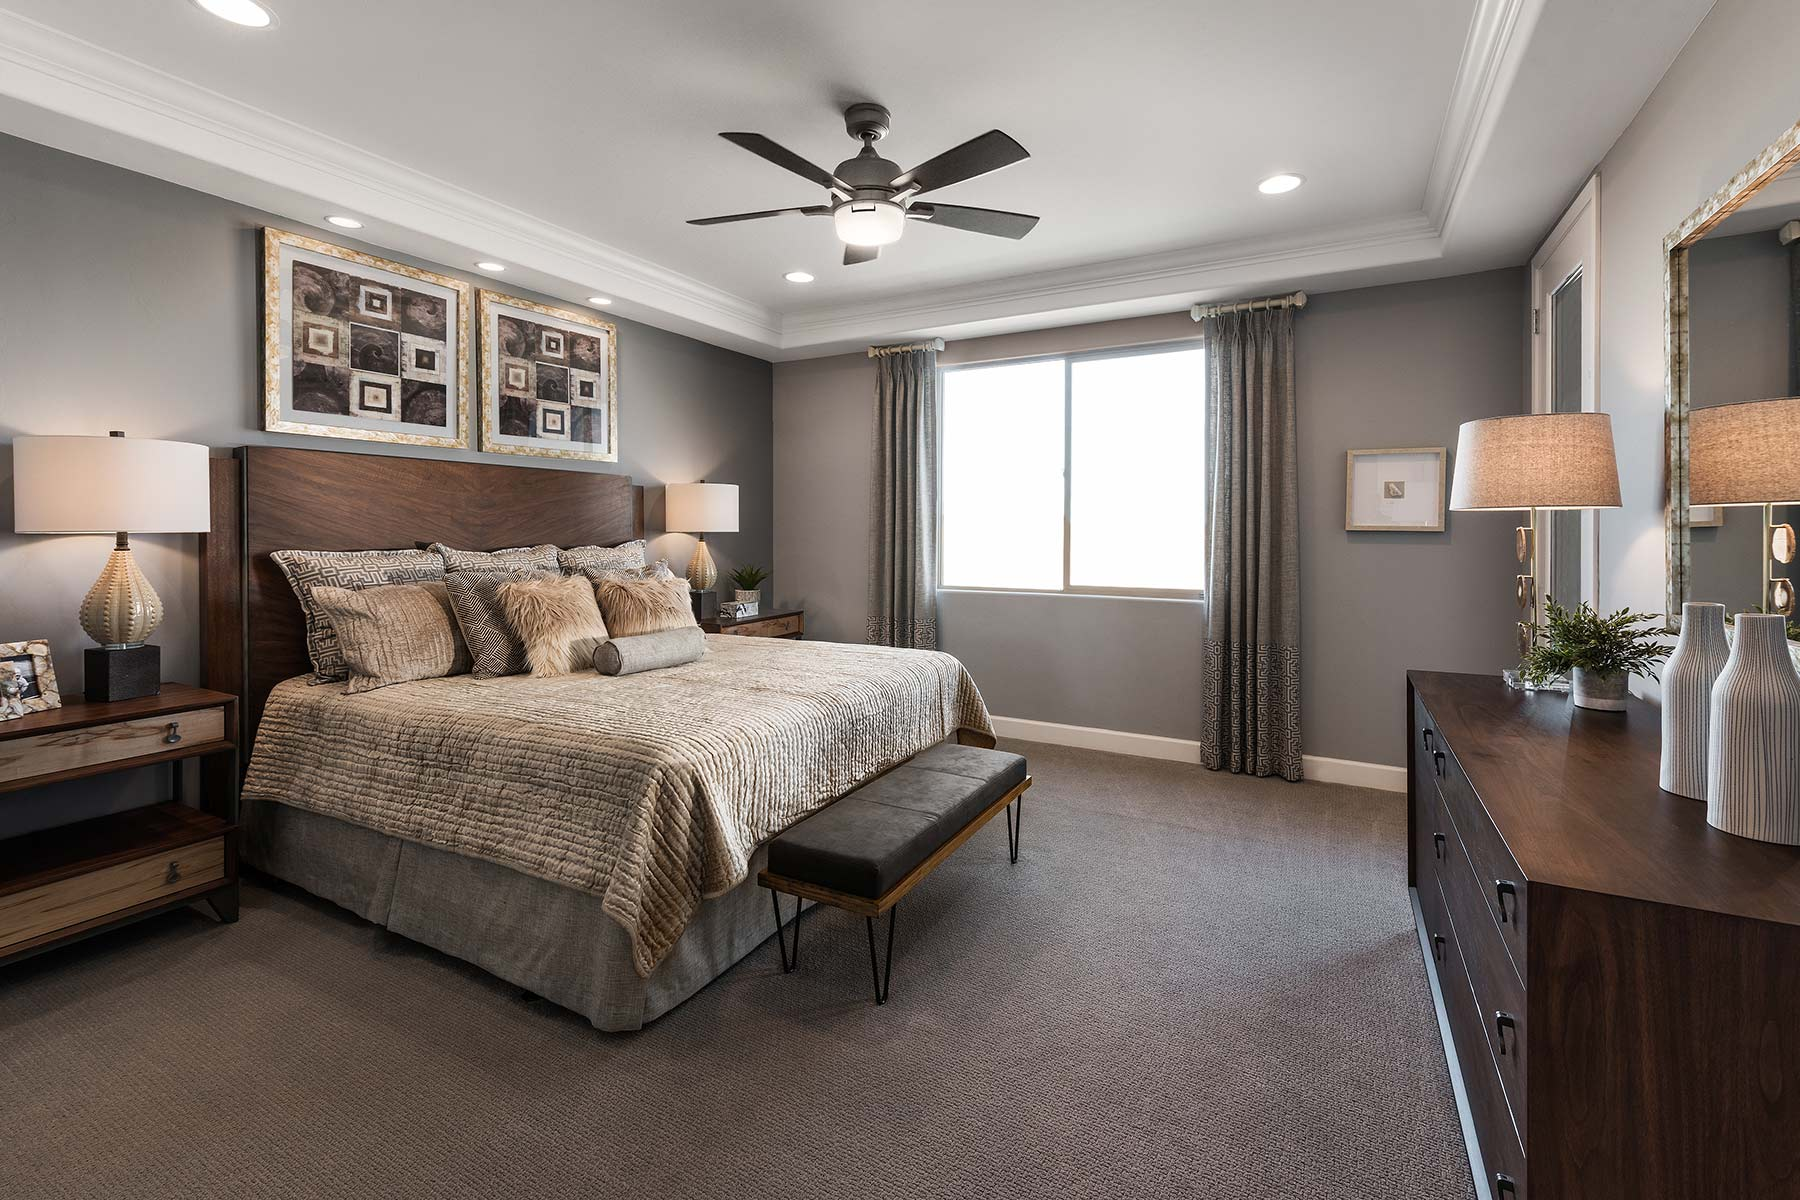 Echo Plan Bedroom at Saguaro Trails in Tucson Arizona by Mattamy Homes